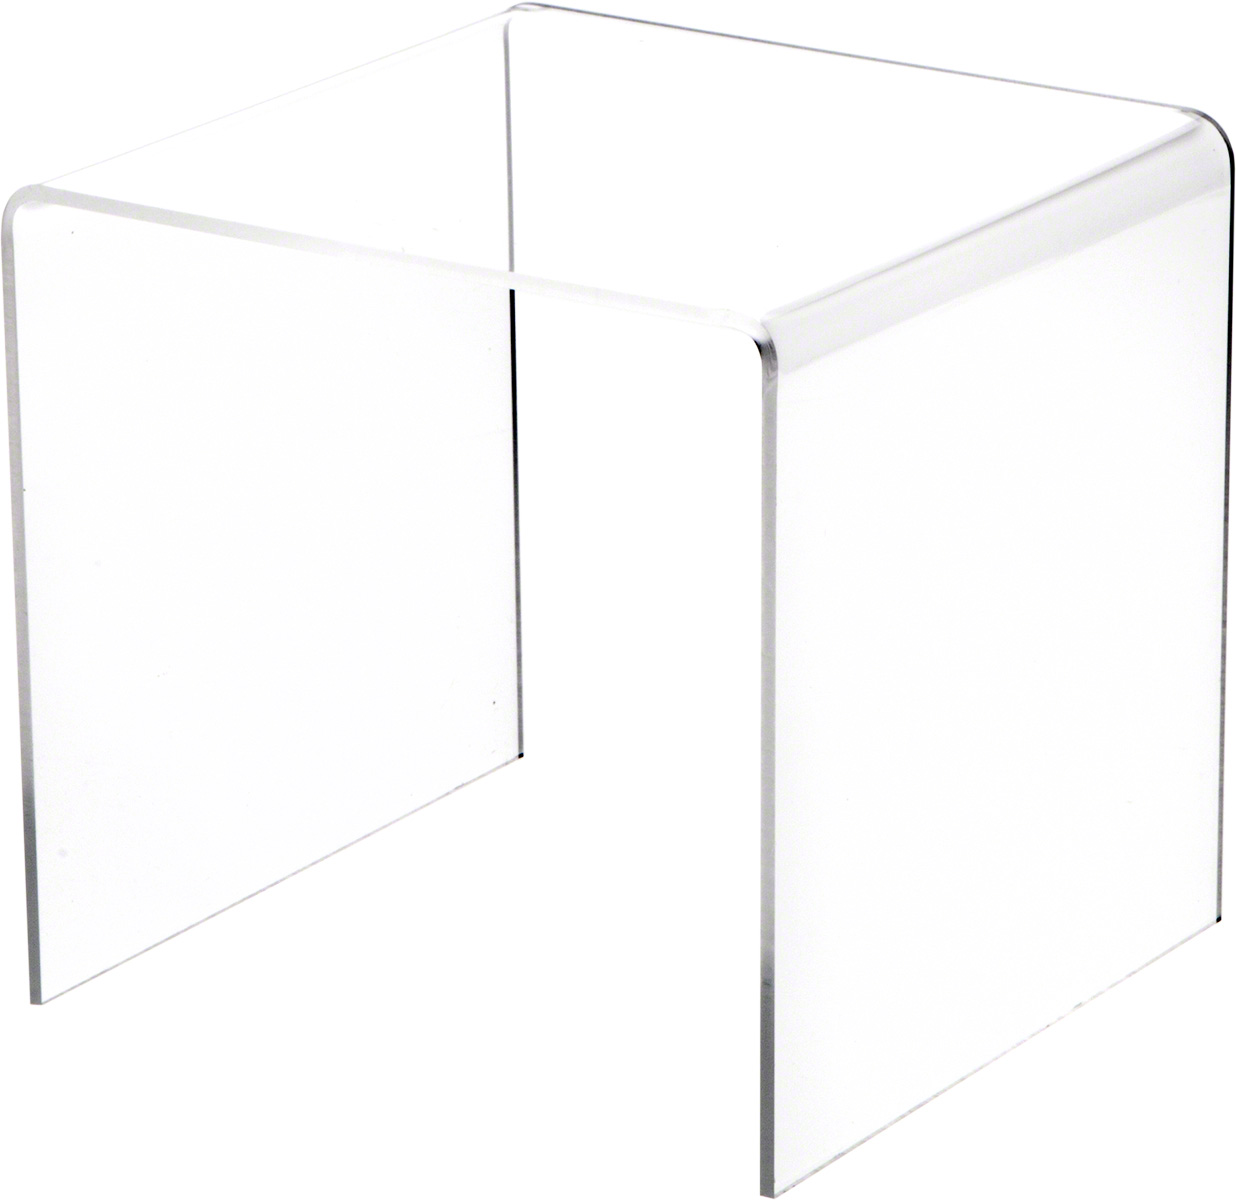 """1.5/"""" H x 3/"""" W x 3/"""" D Plymor Clear Acrylic Short Square Riser 1//8/"""" thick"""